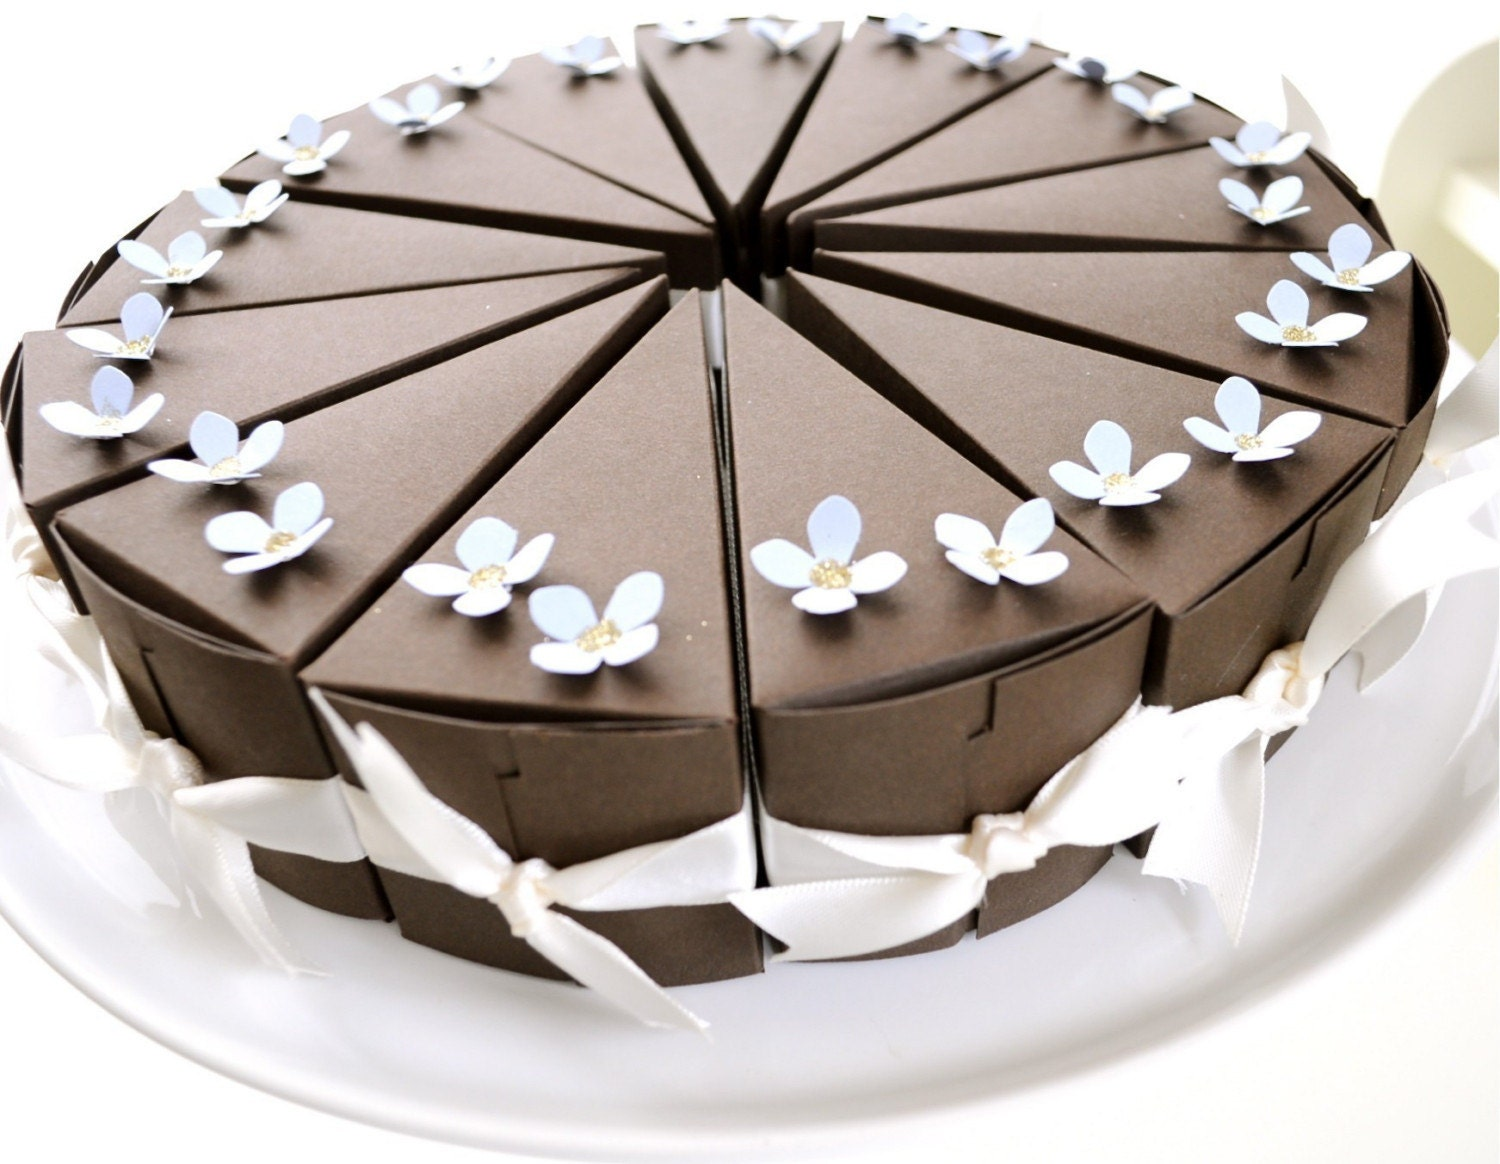 Chocolate paper cake with blue flowers SALE AND FREE